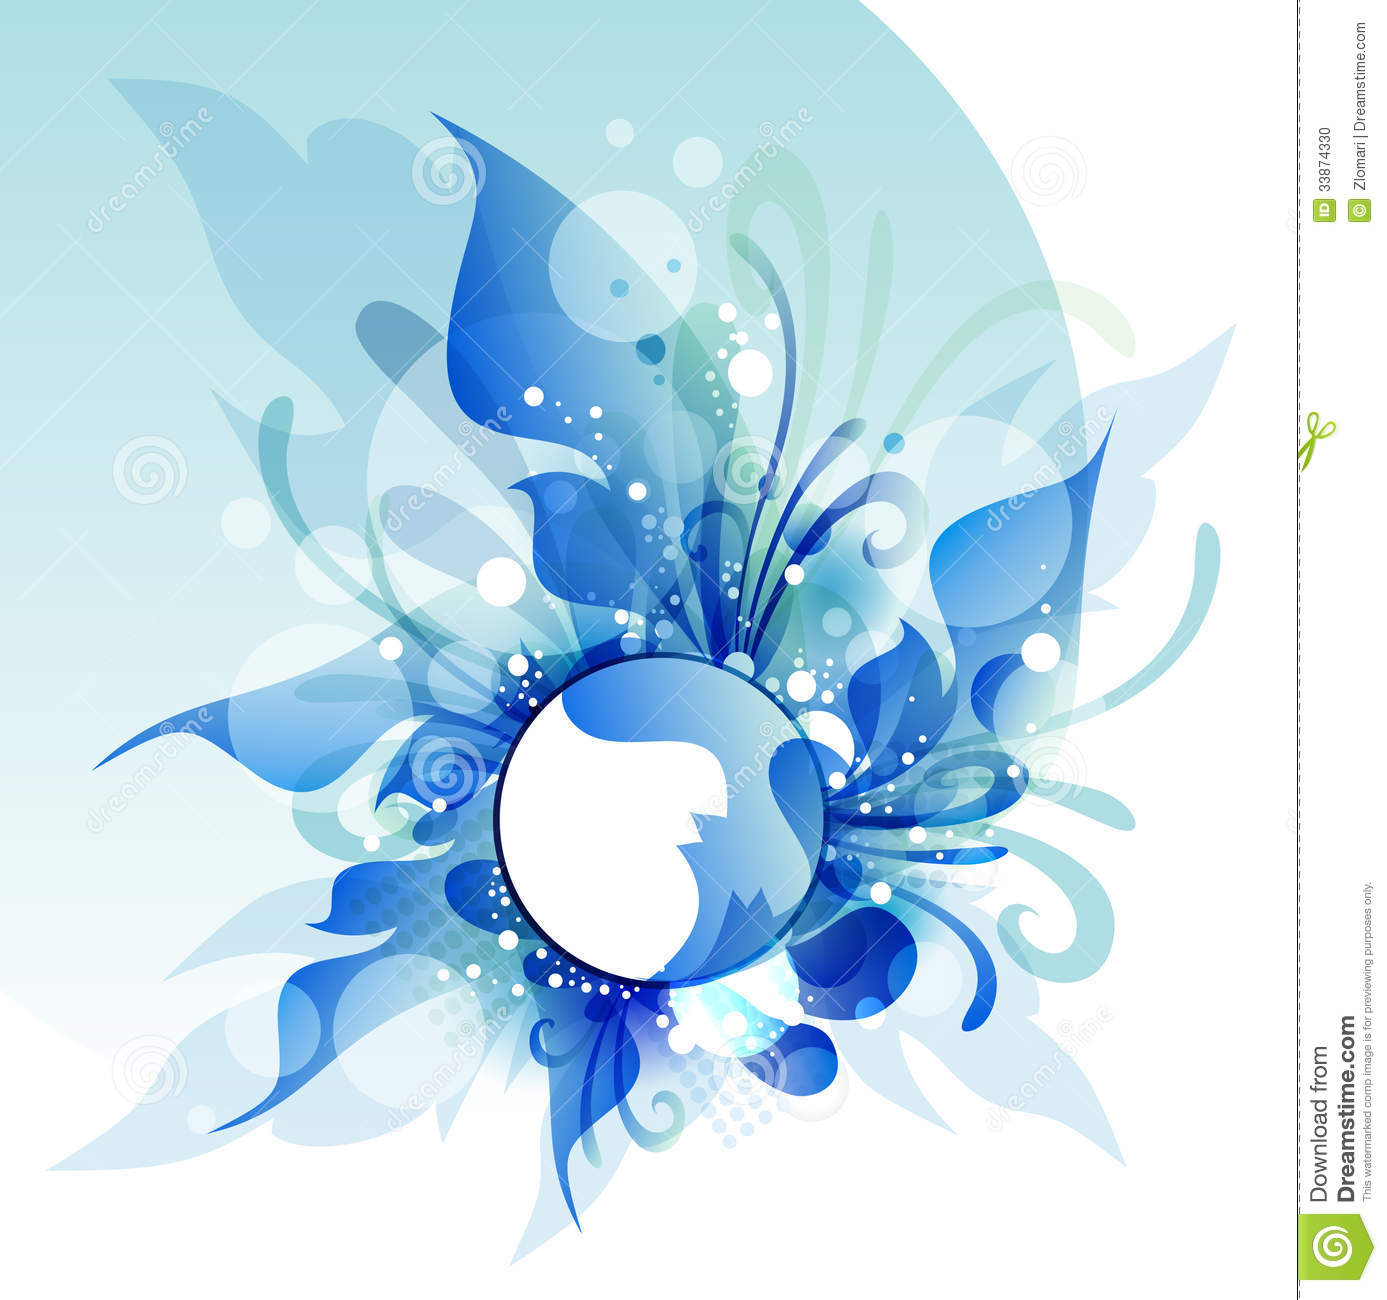 Abstract Flower Background With Decoration Elements For: Abstract Flowers, Vector Illustrationfor Design Stock